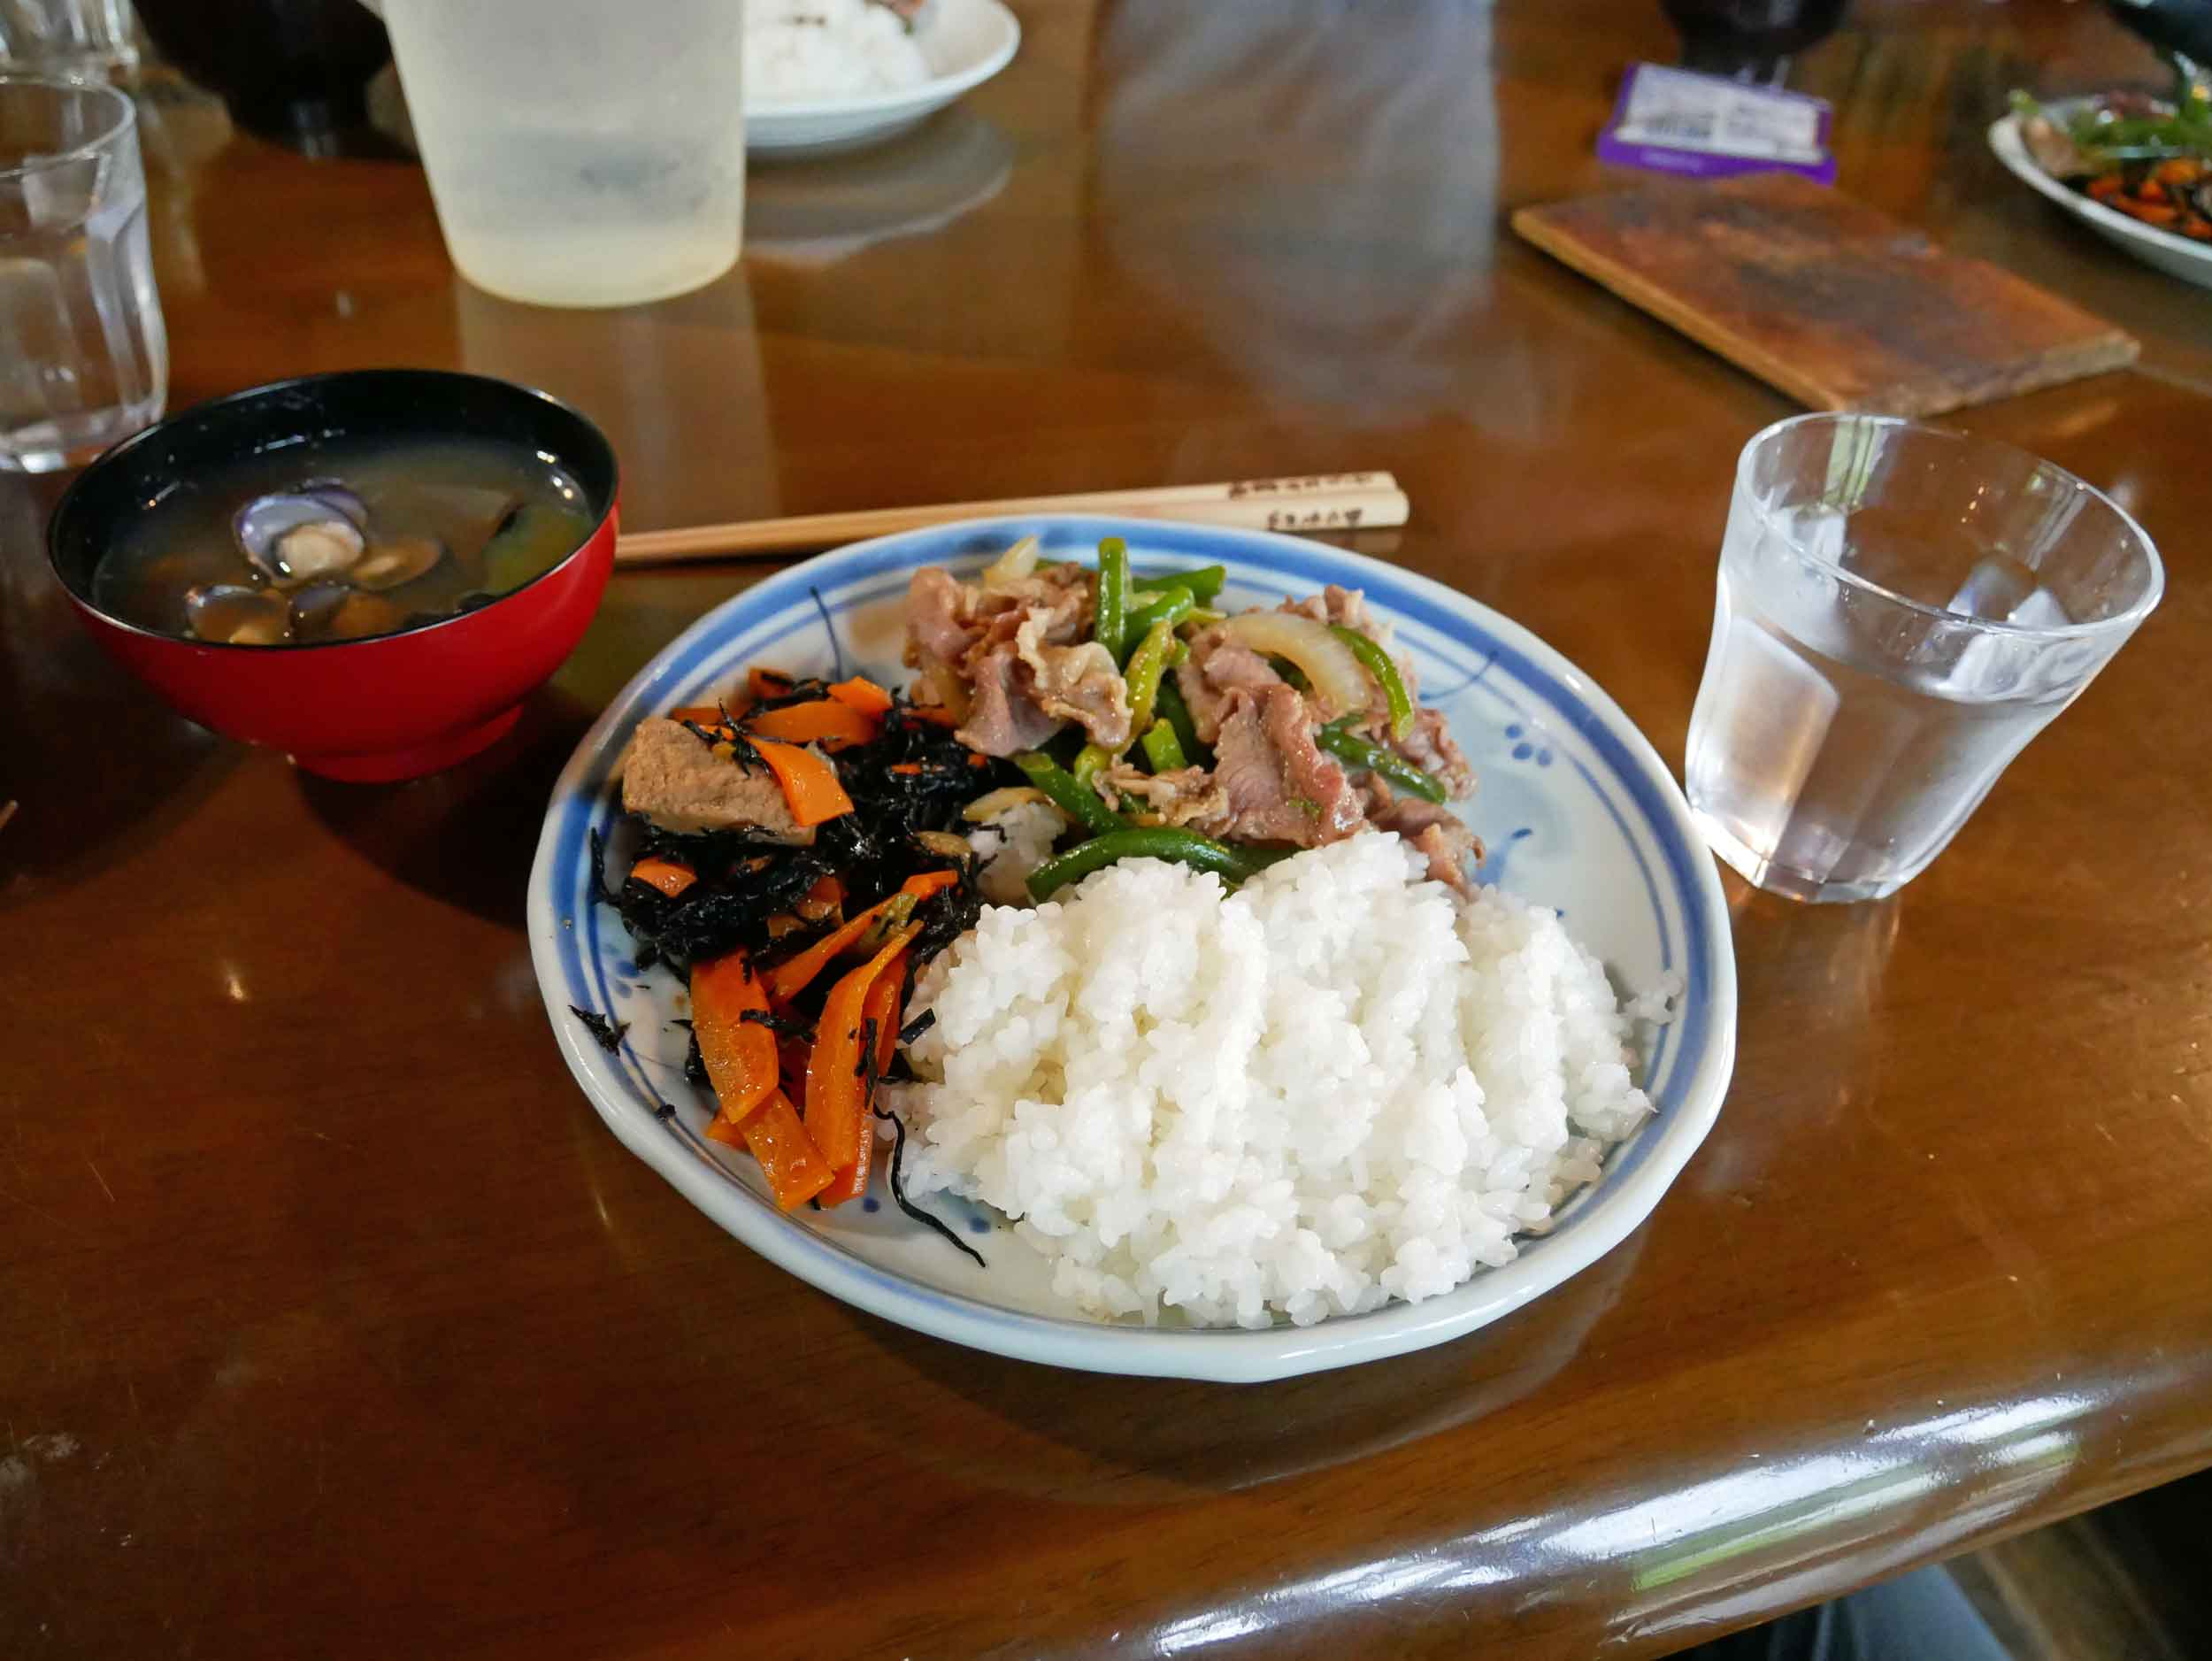 We were rewarded for our labour with delicious Japanese meals prepared by our lovely host, Junko-San.